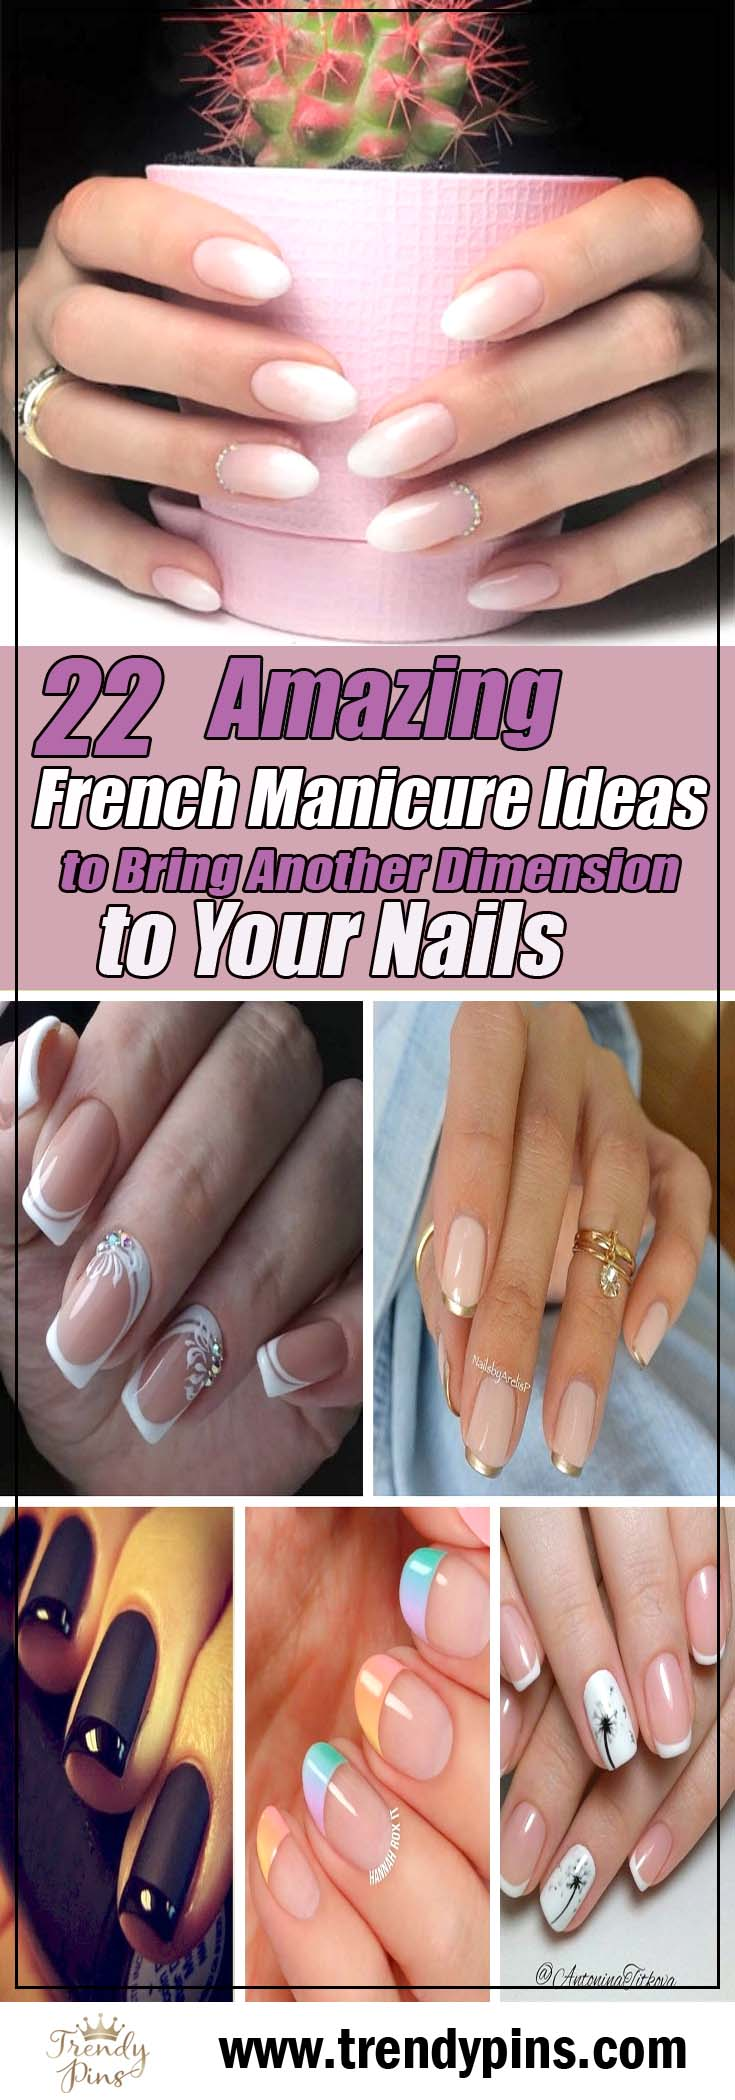 22 Amazing French Manicure Ideas To Bring Another Dimension To